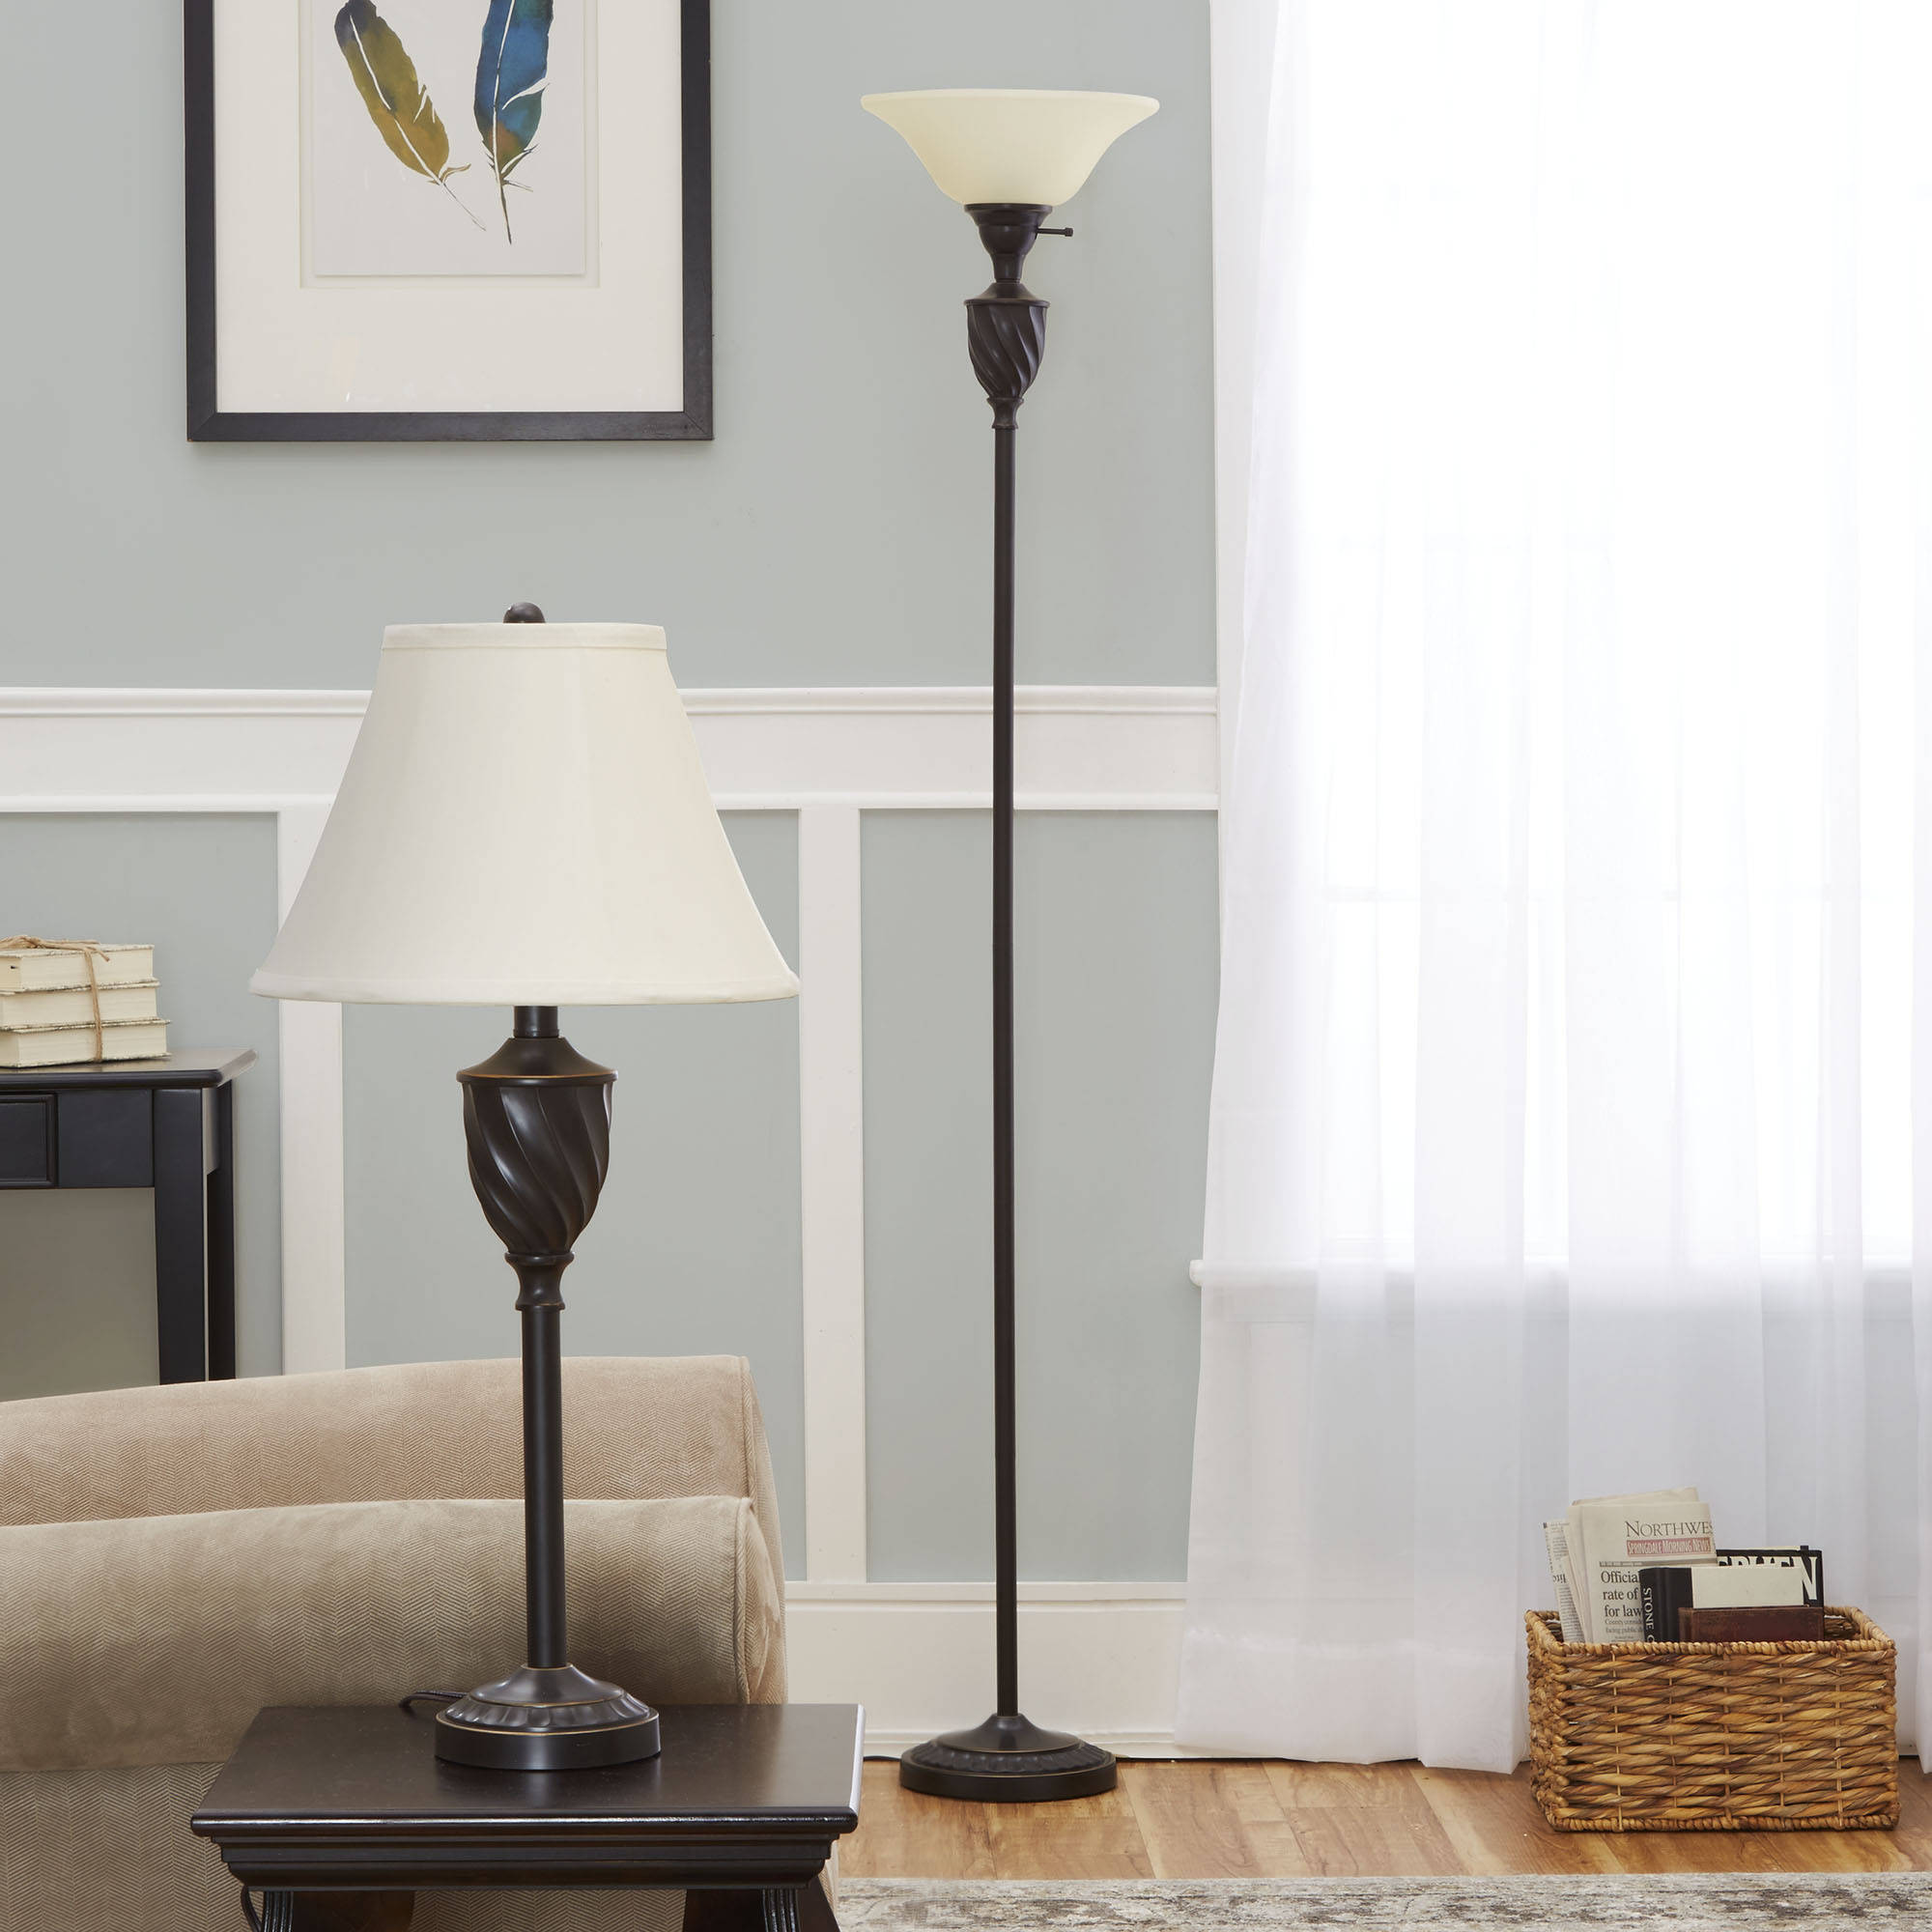 Mainstays table and floor lamp set oil rubbed bronze finish mainstays table and floor lamp set oil rubbed bronze finish walmart aloadofball Images